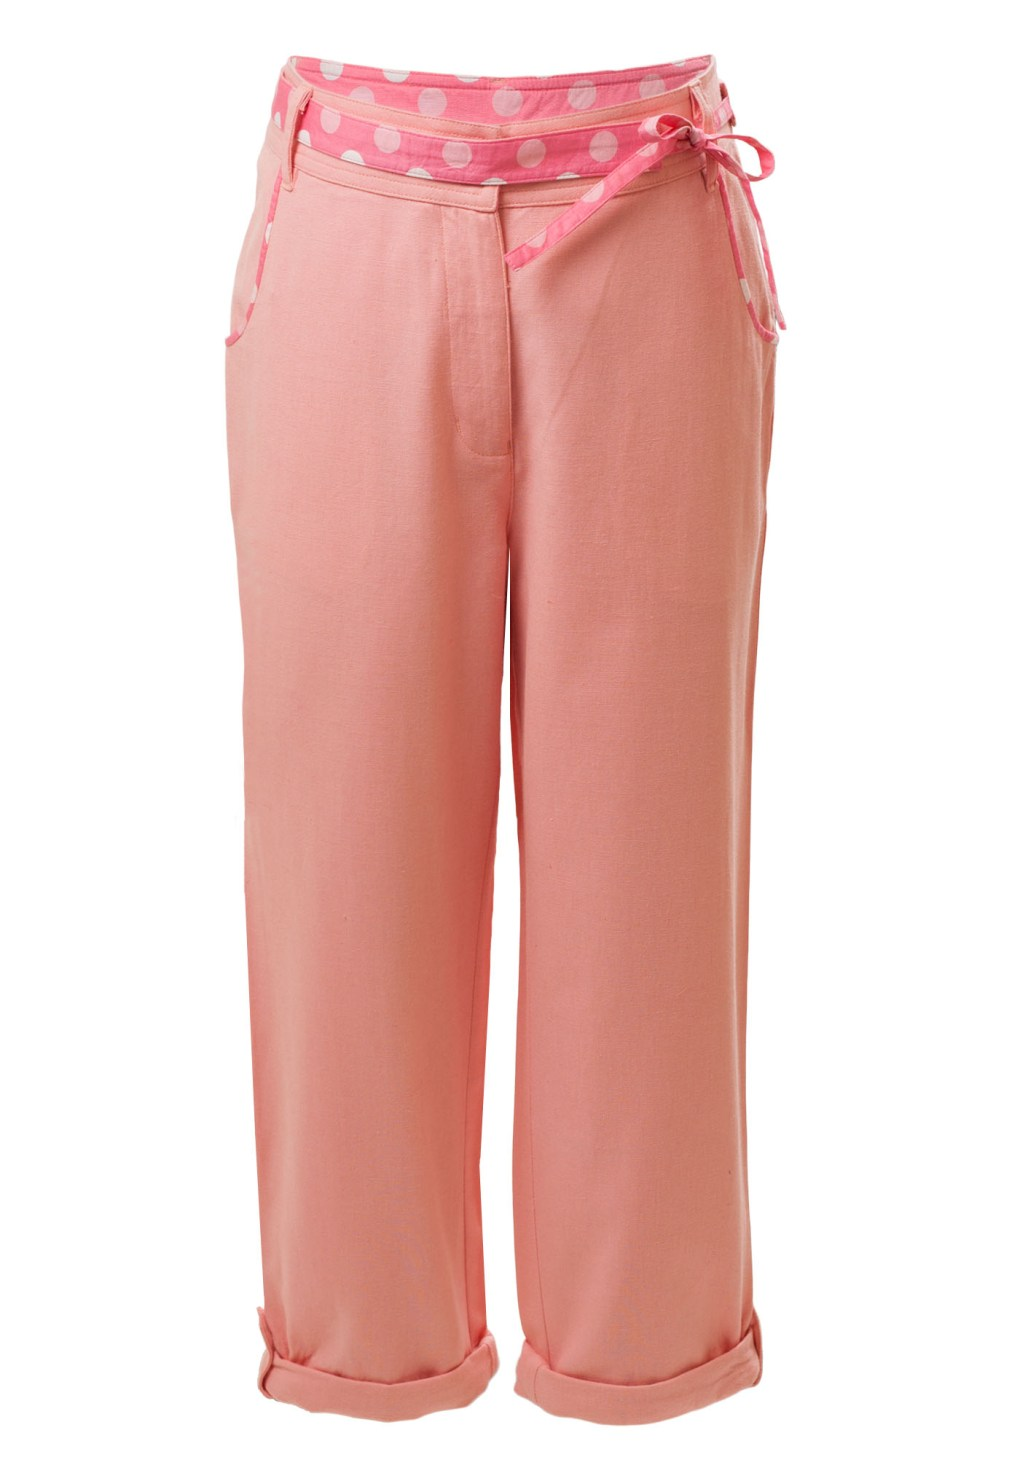 MINC Petite Sunset Girls Capris in Berry Pink Linen